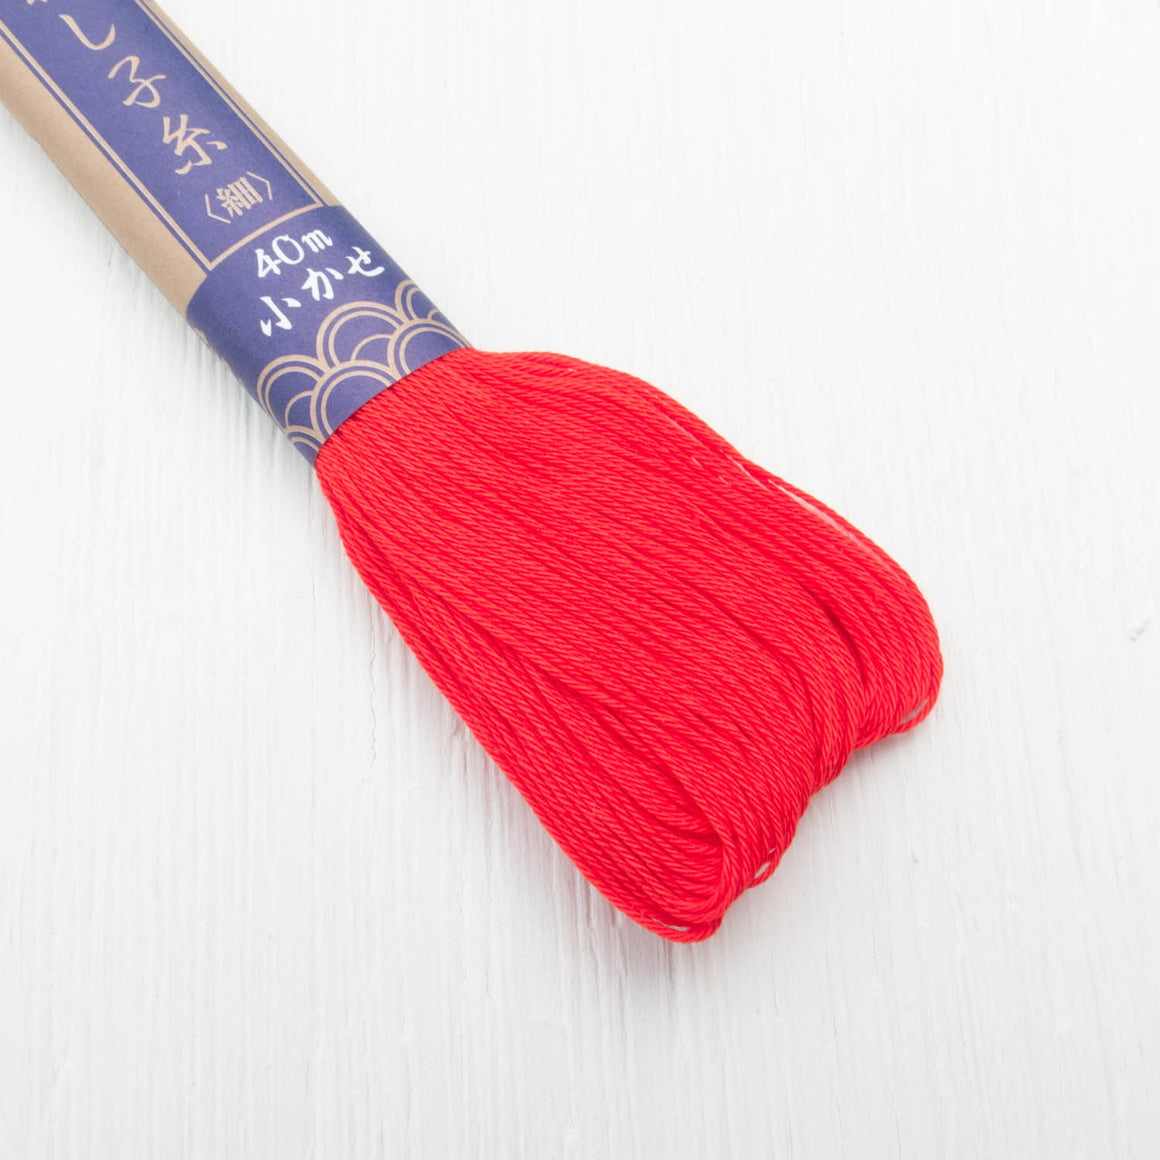 Daruma Sashiko Thread - Bright Red (#16) Sashiko - Snuggly Monkey